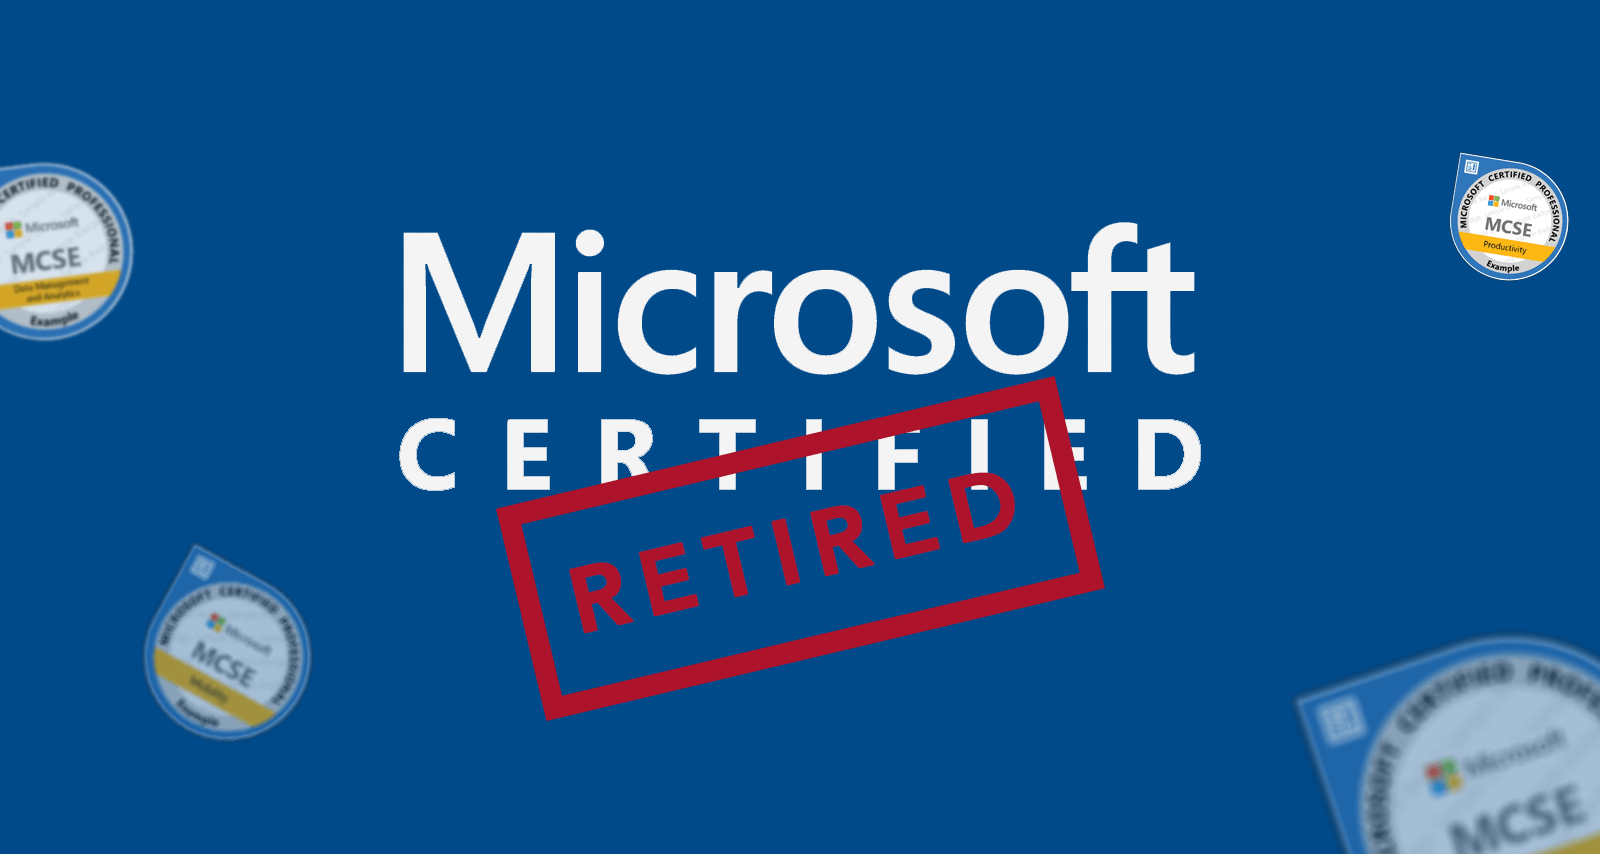 Microsoft Retiring MCSA, MCSE, And MCSD Certifications; What to Do Now